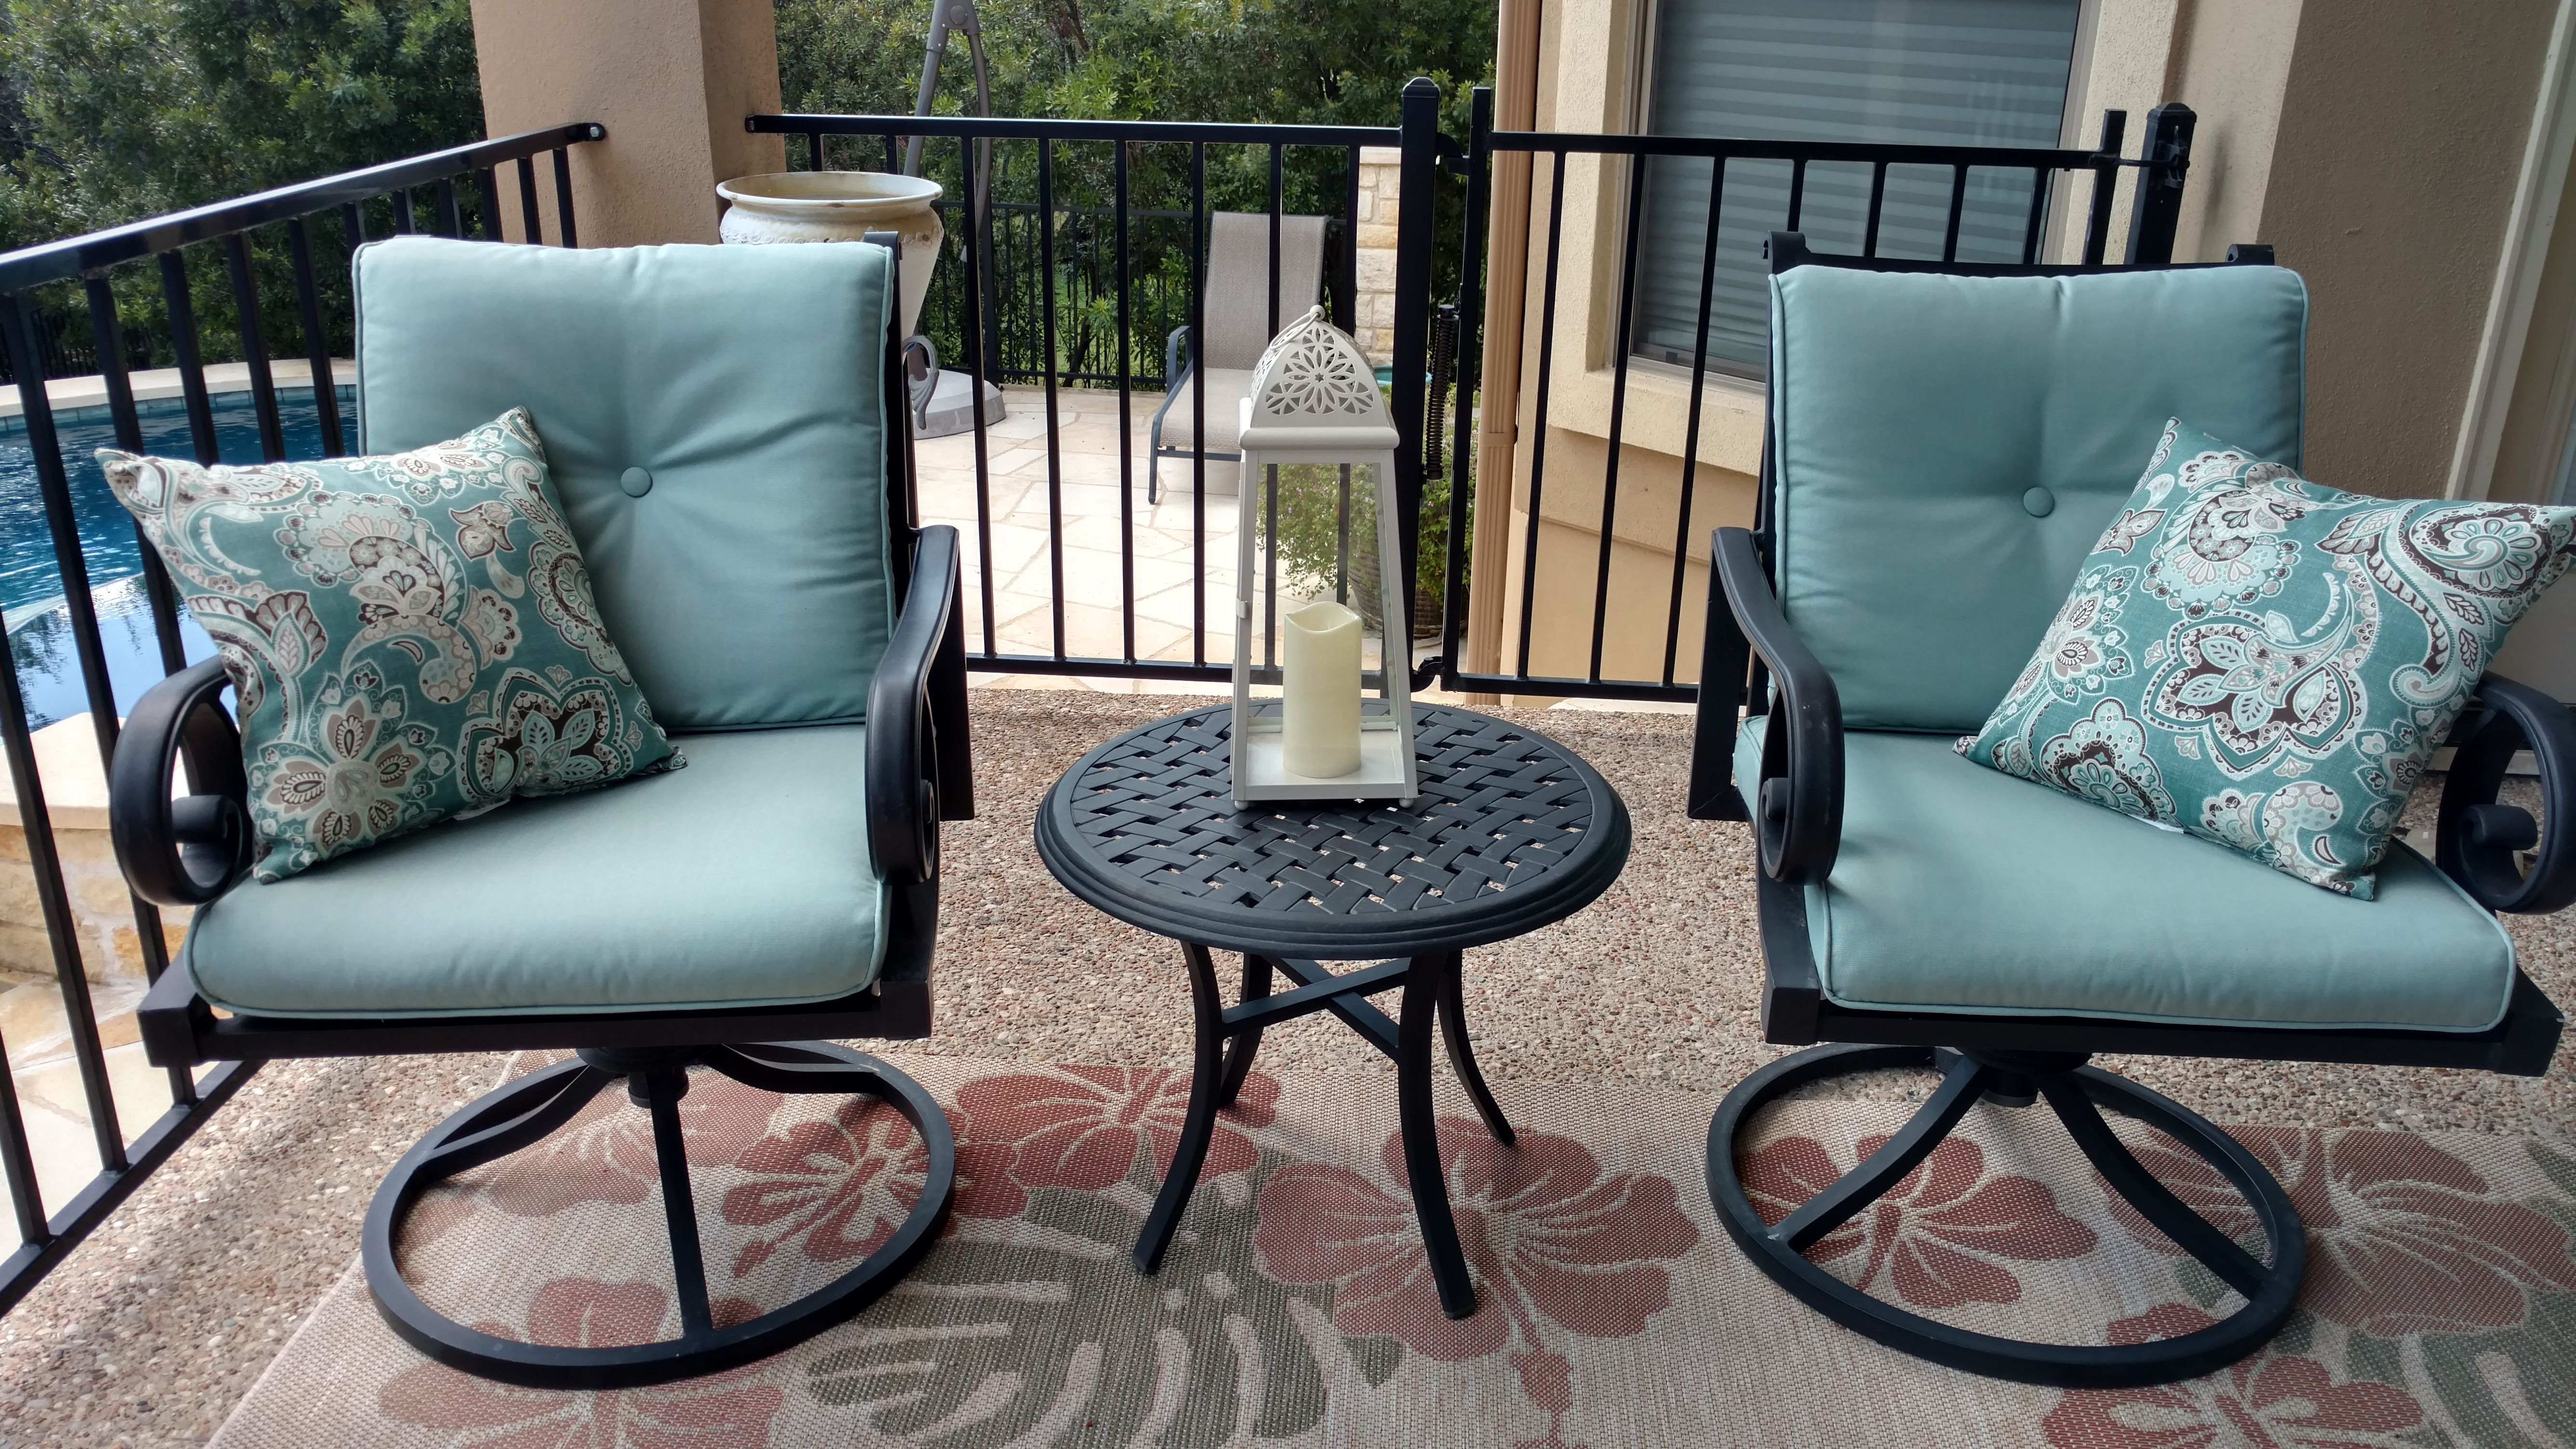 Outdoor Furniture Cushions Covered In Sunbrella Canvas Spa